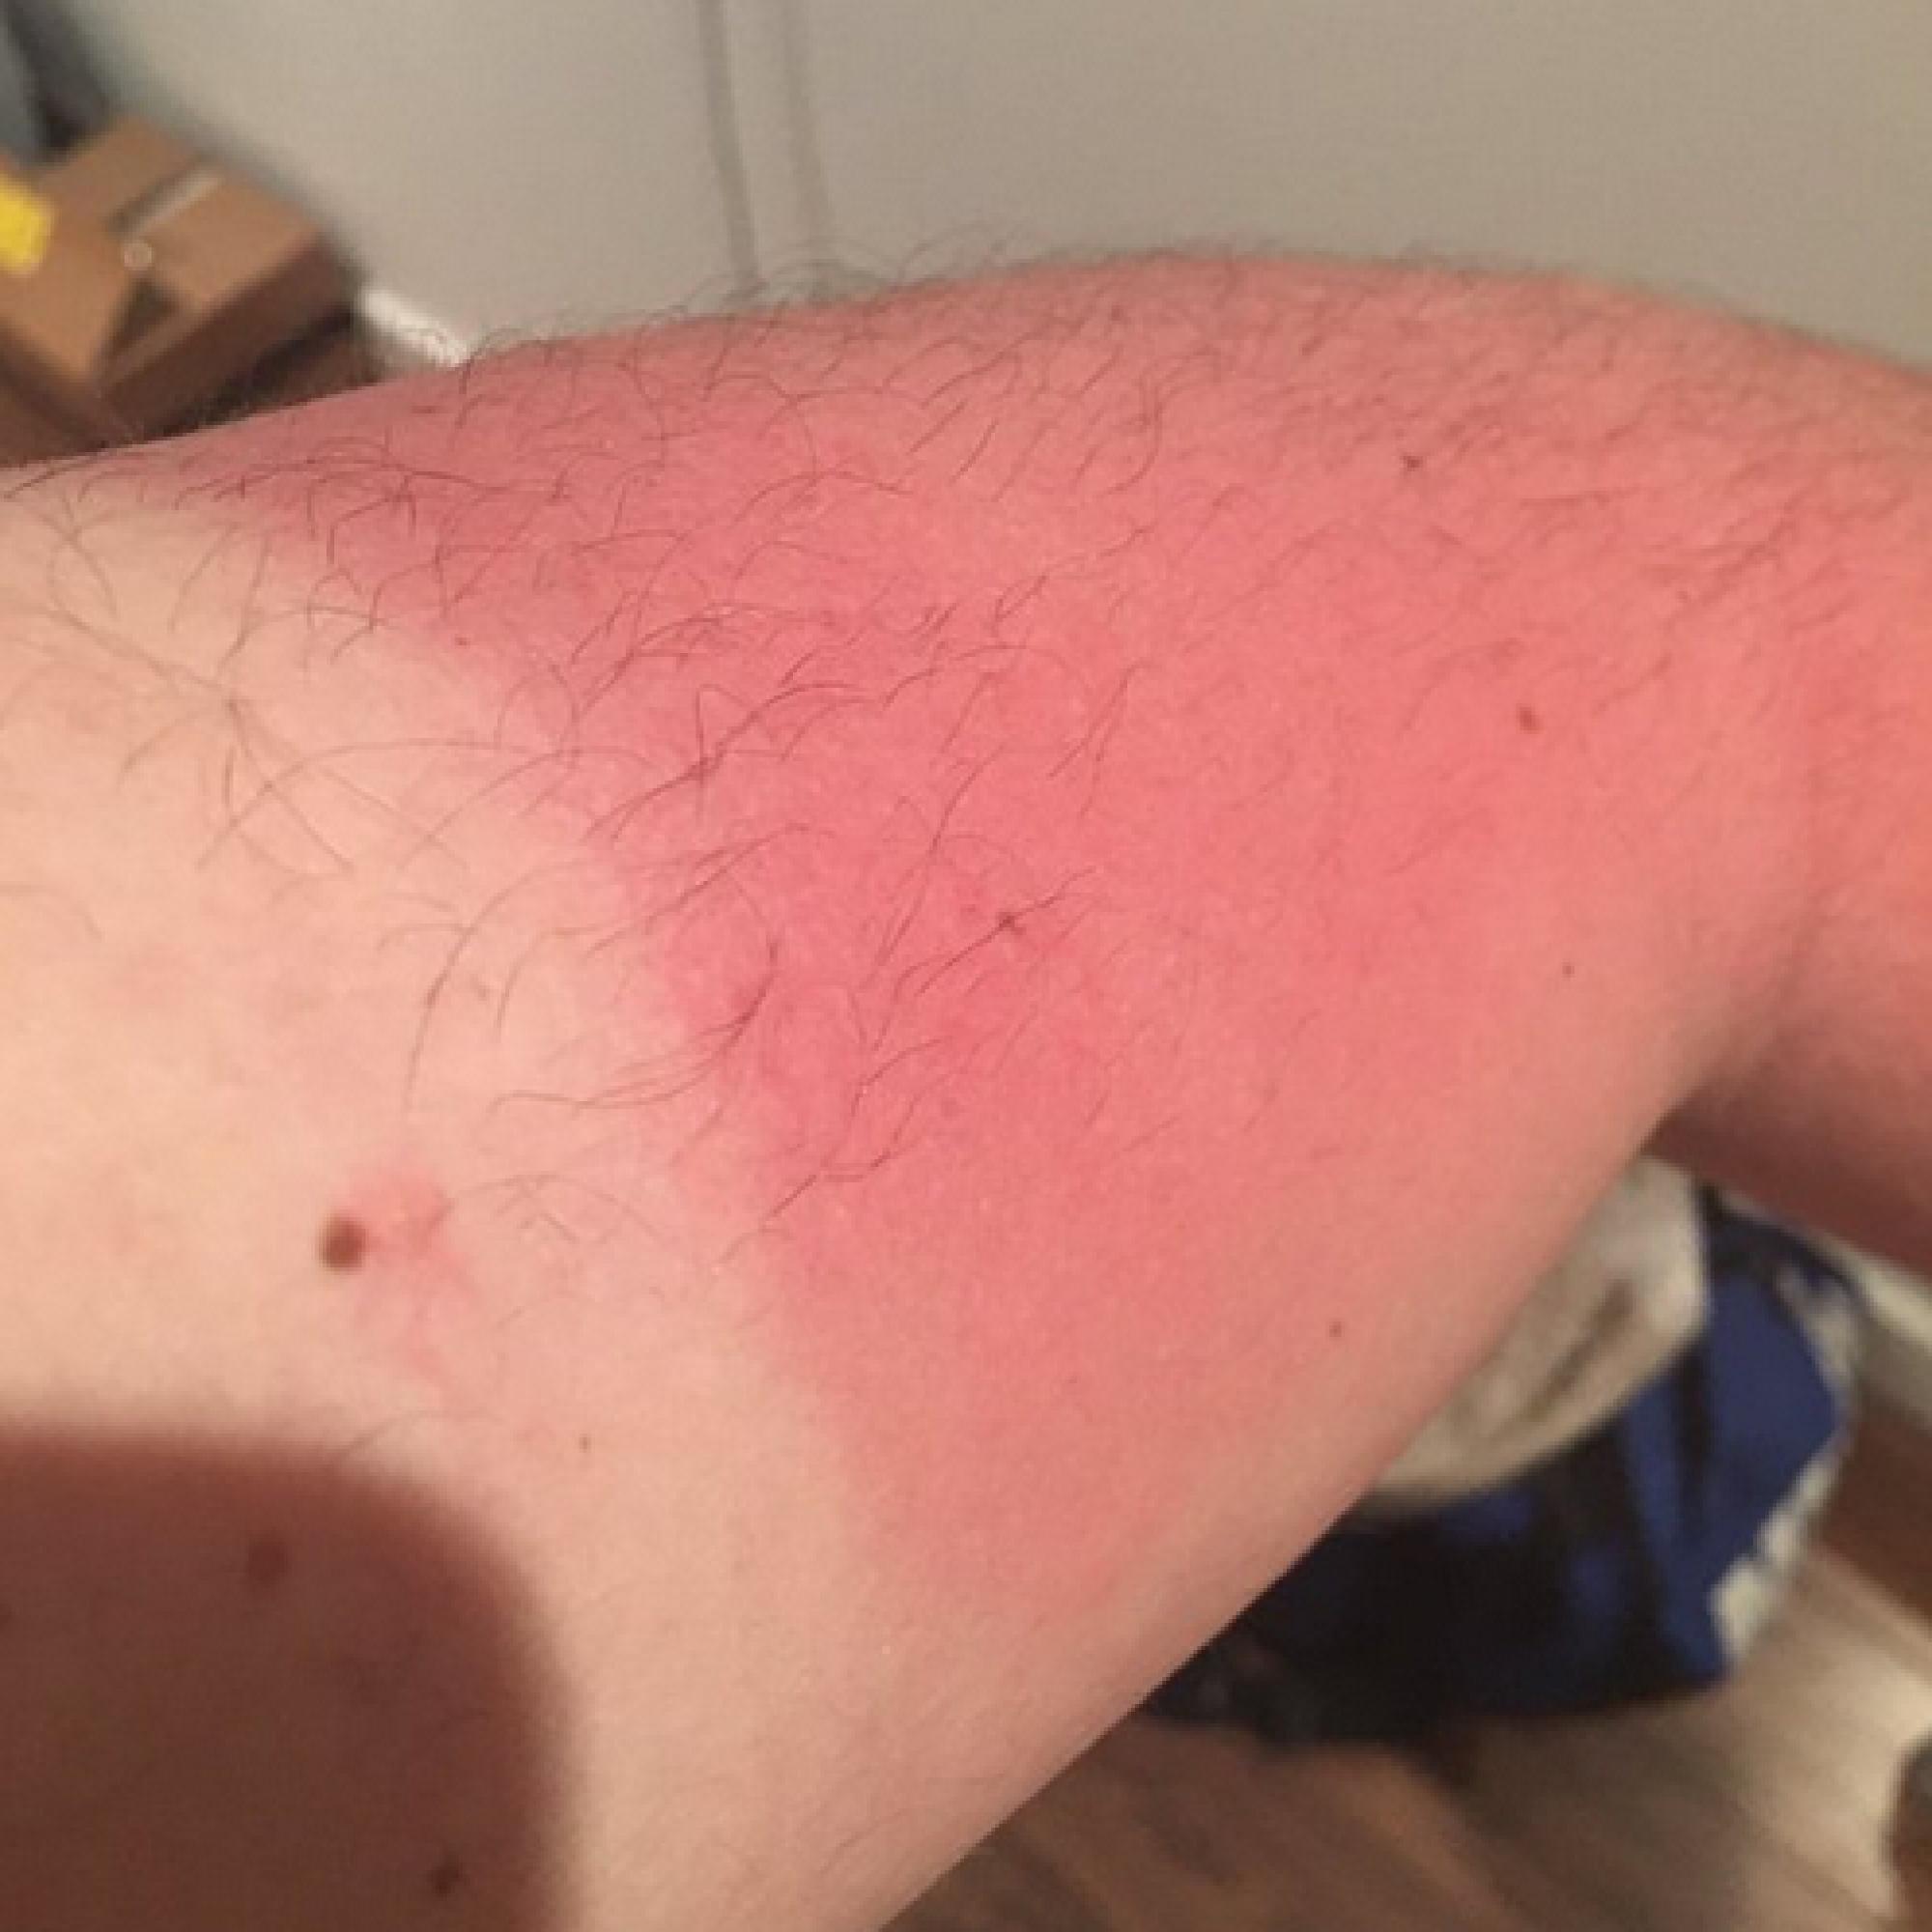 Here's why a farmer's tan is the hottest look this summer